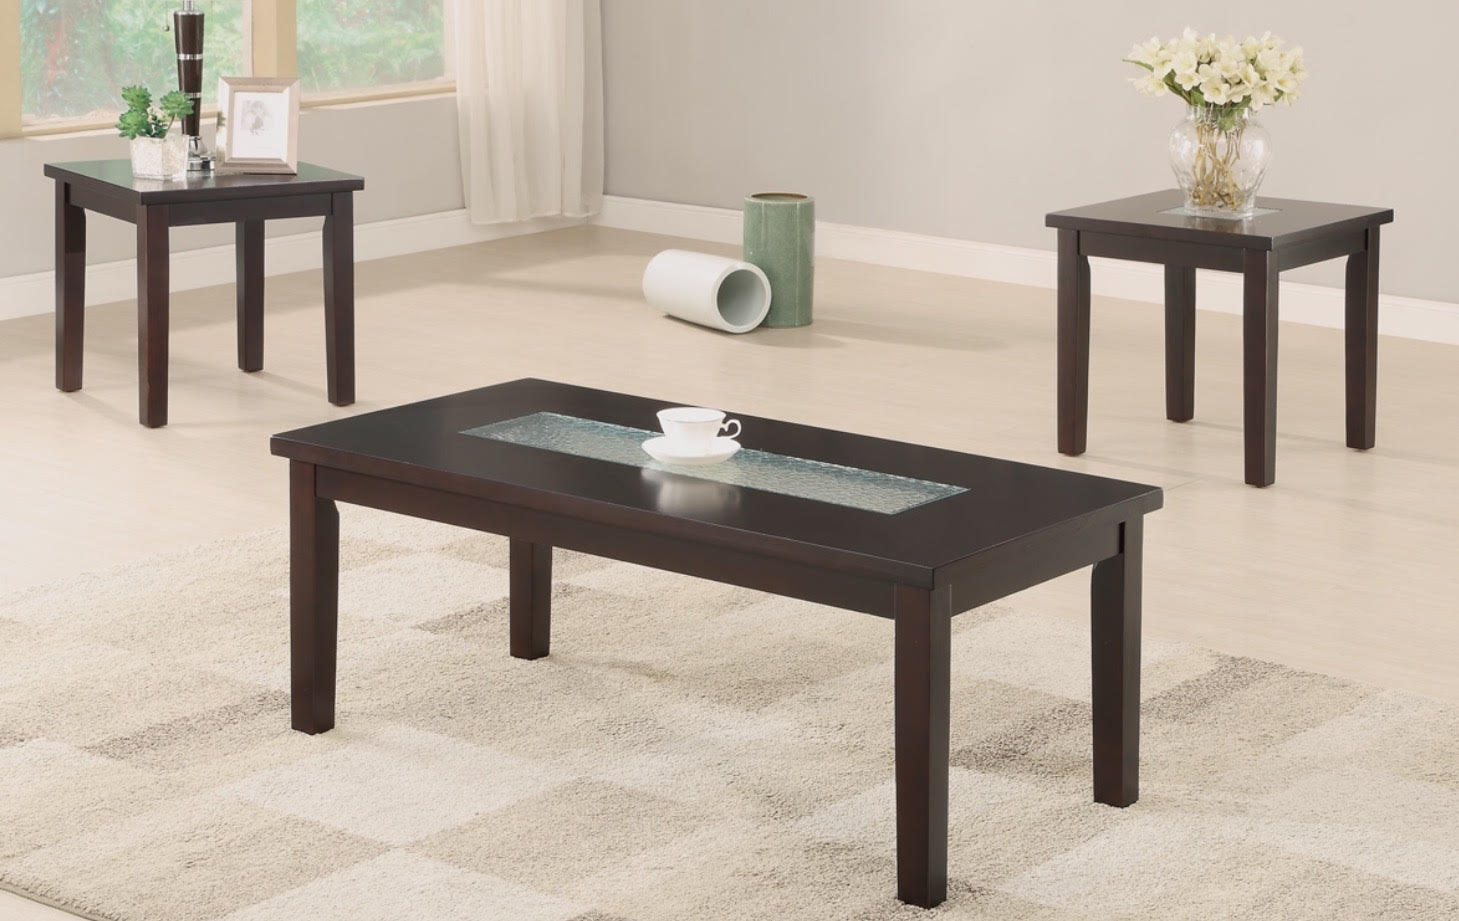 3-PCS COFFEE TABLE SET GLASS TOP & 3-PCS COFFEE TABLE SET GLASS TOP u2014 American Discount Furniture